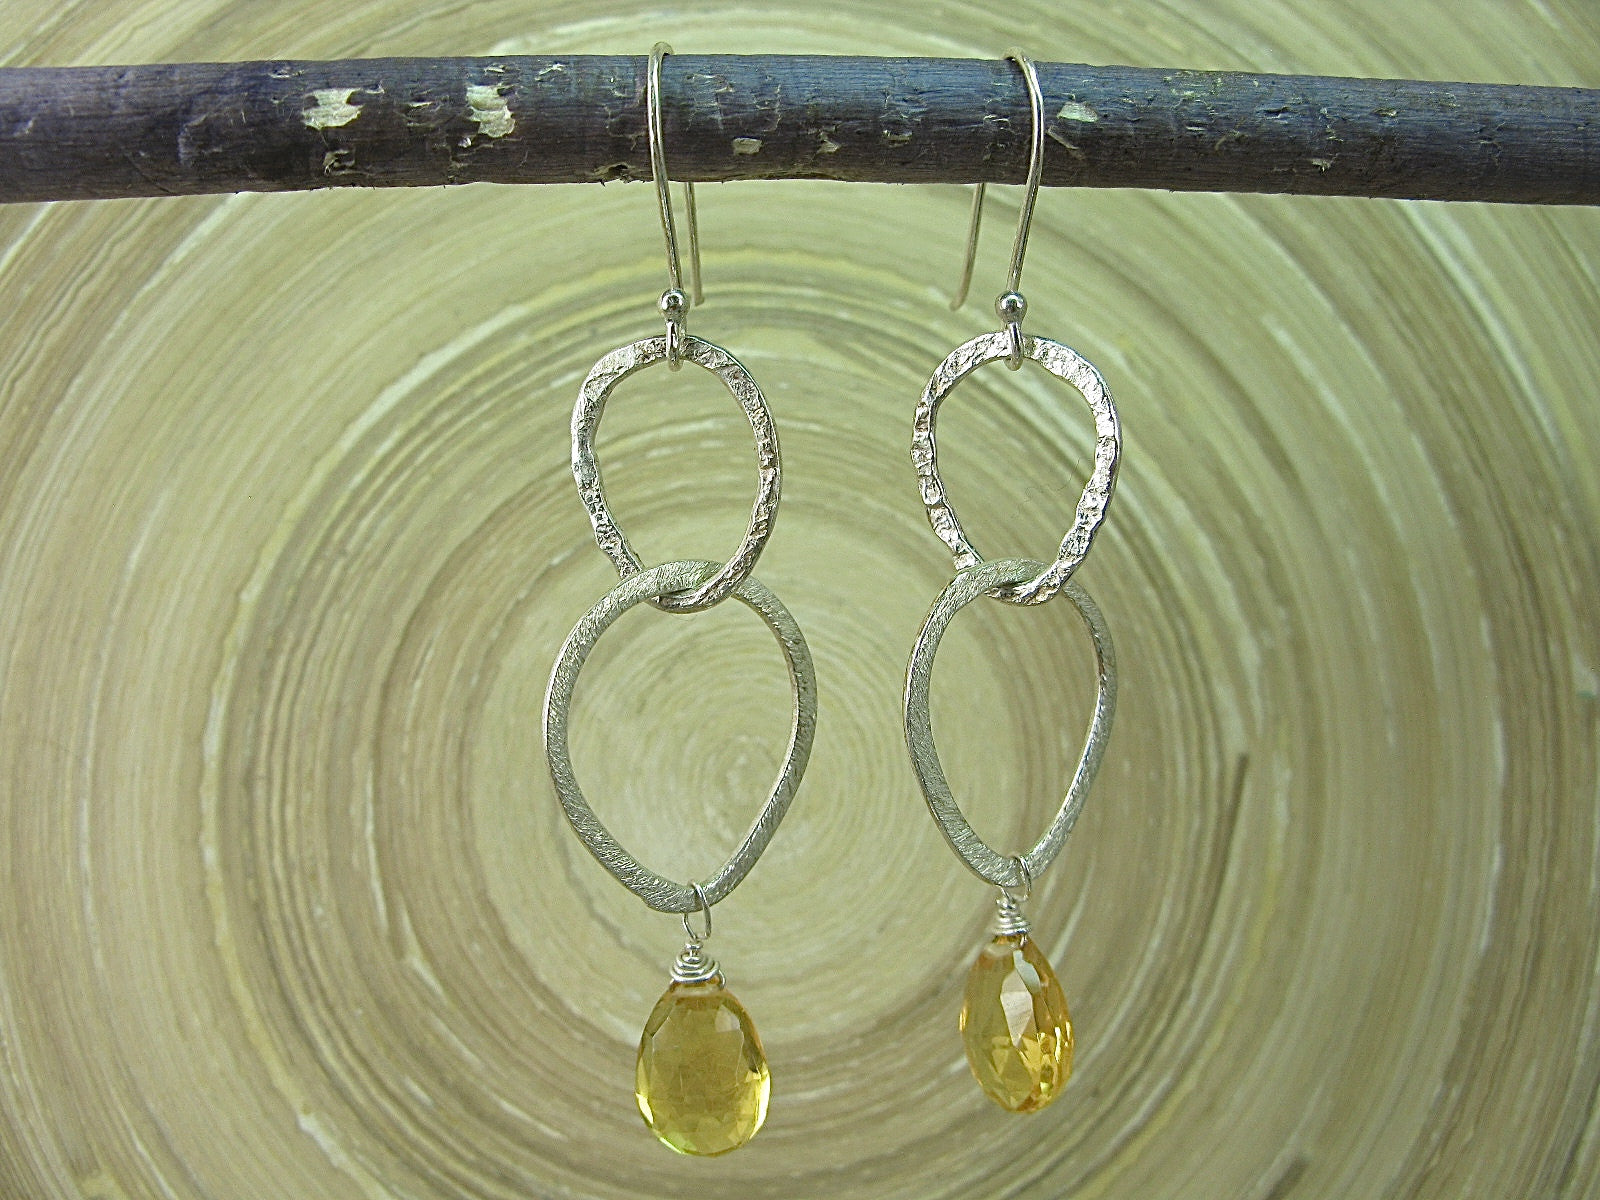 Citrine Hammered Dangle 925 Sterling Silver Earrings Earrings Faith Owl - Faith Owl